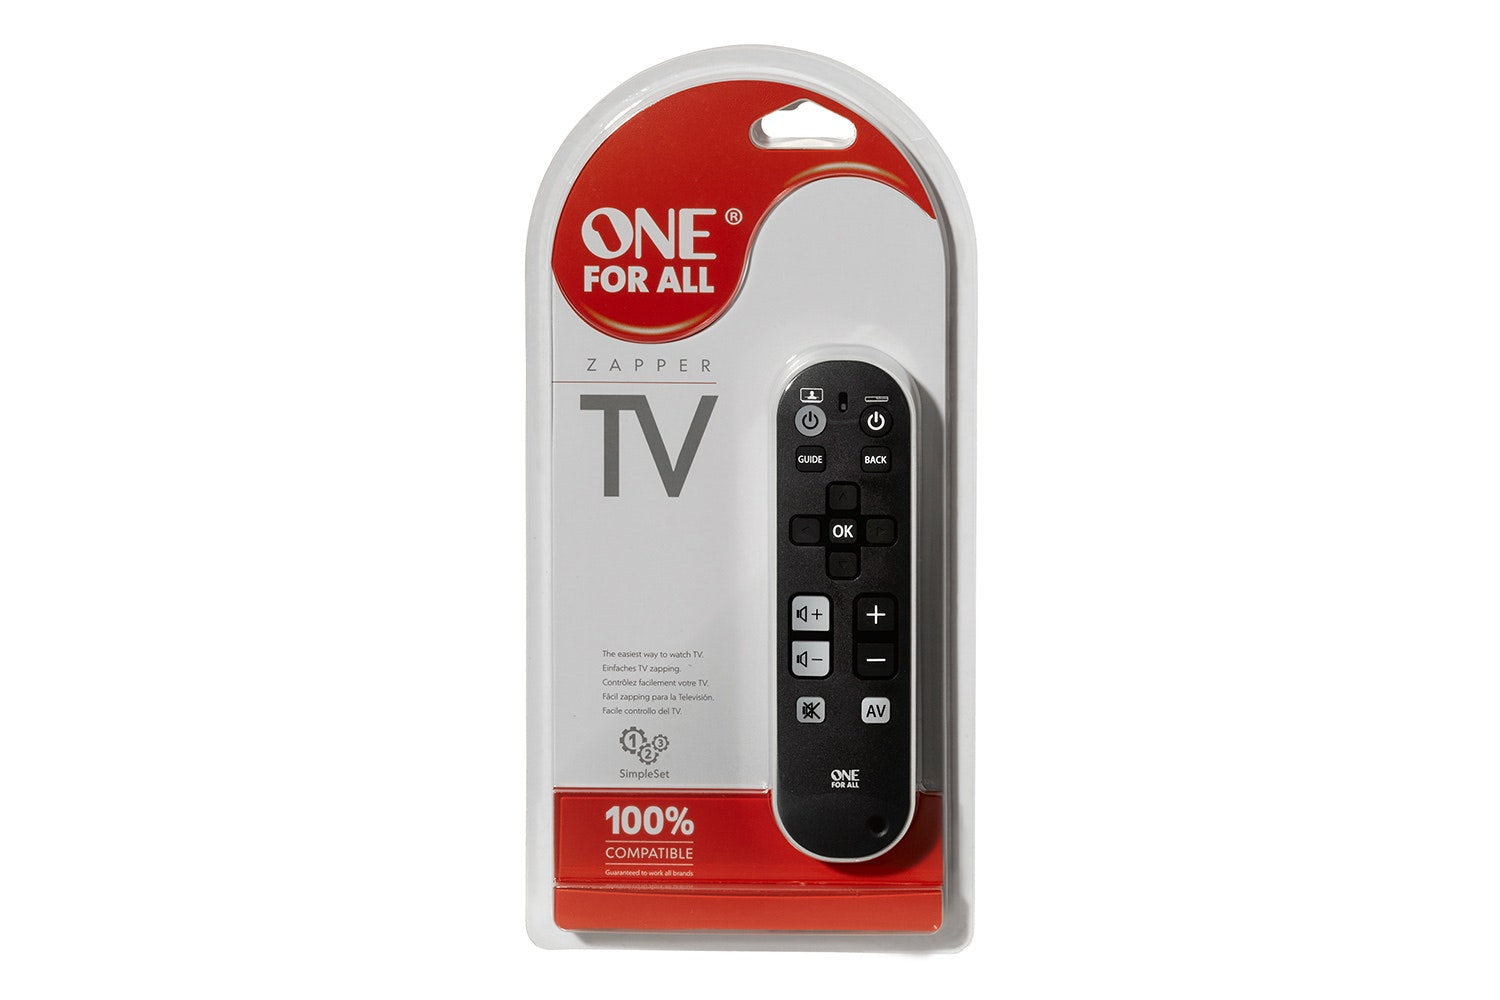 One For All TV Zapper Universal Remote Control | URC6810